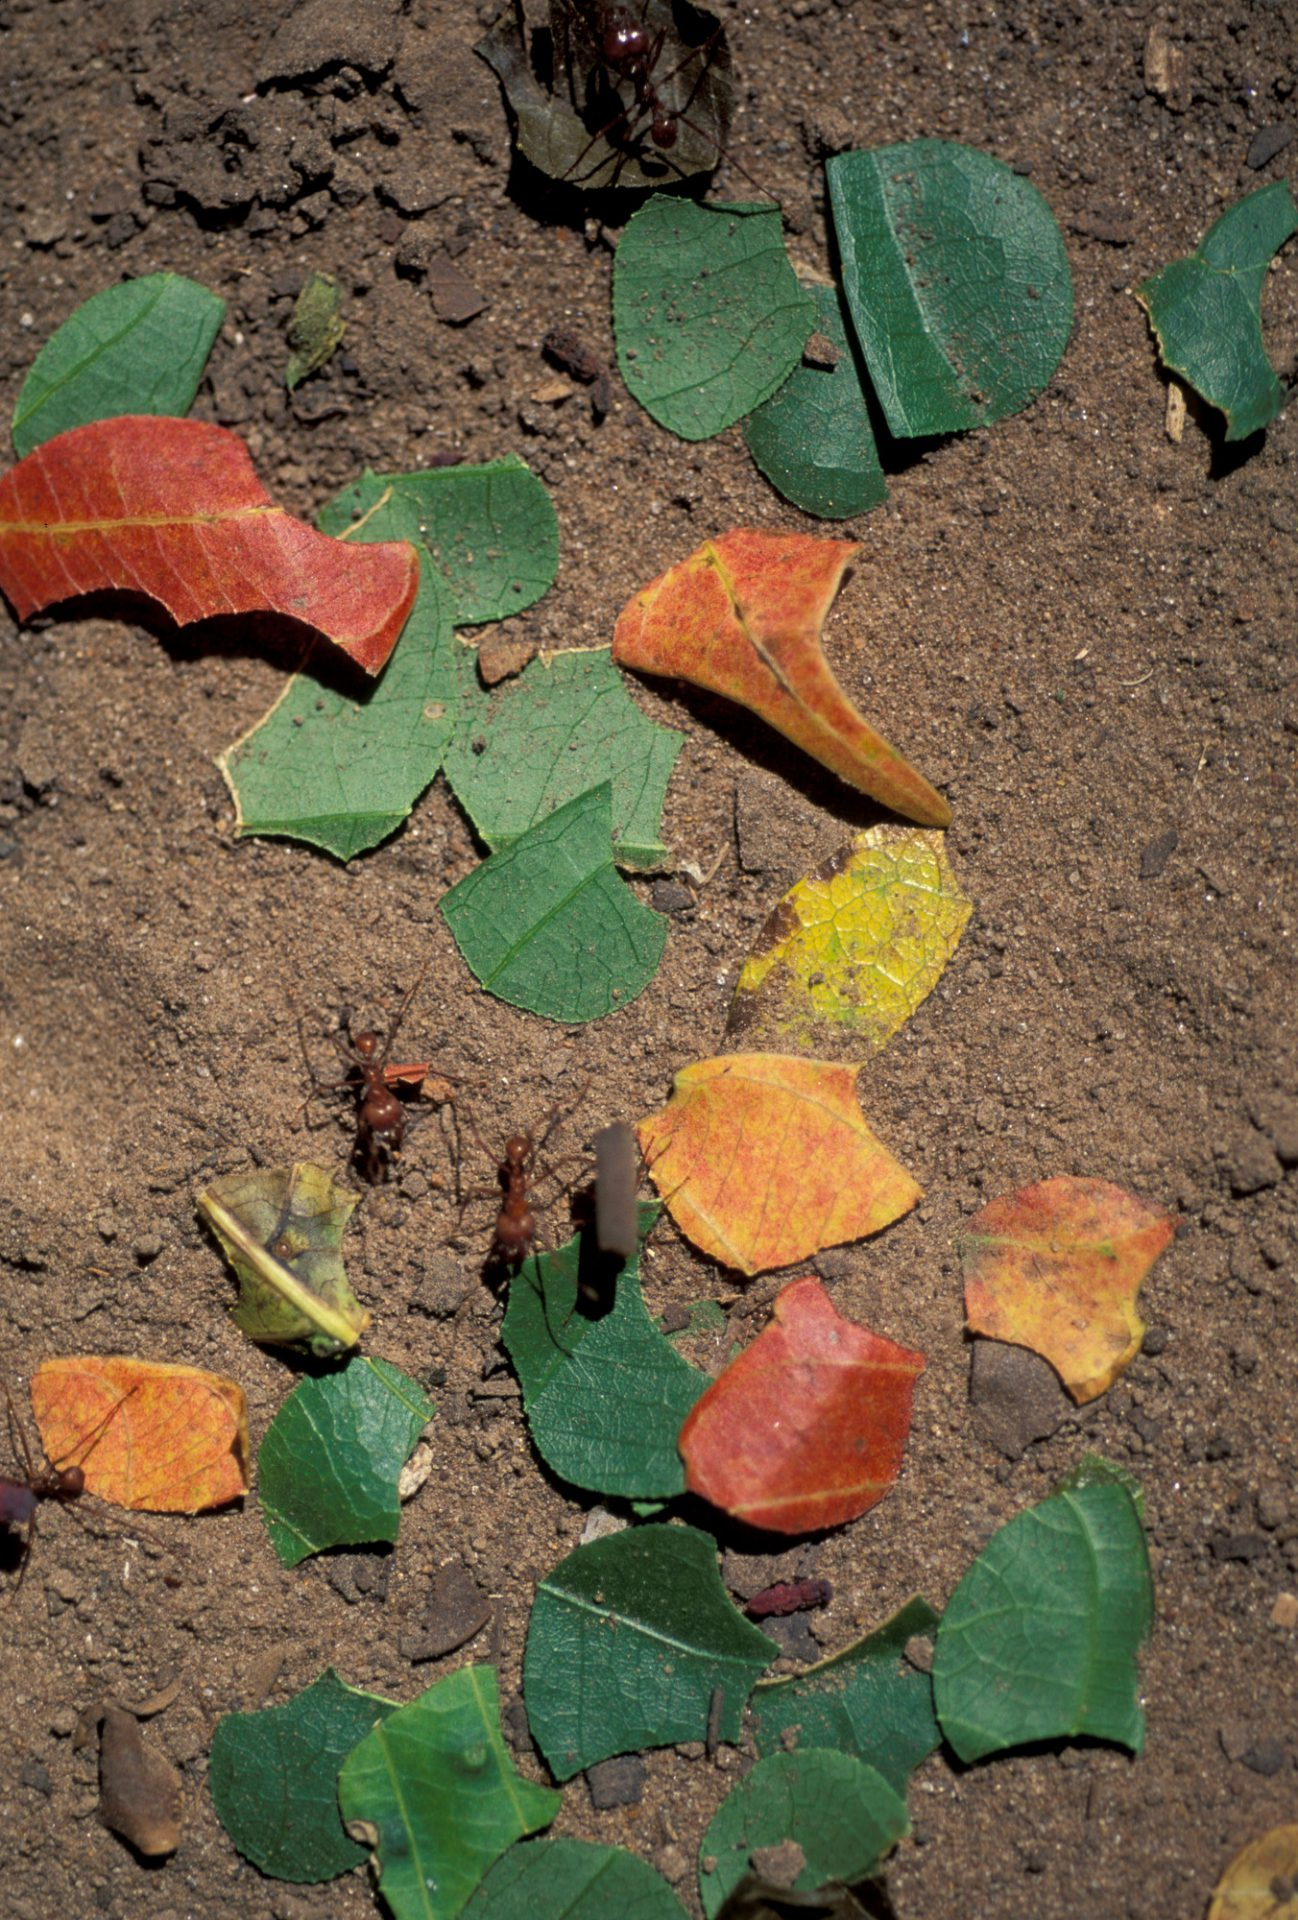 Photo: Leaf cutter ants in Bolivia's Madidi National Park.